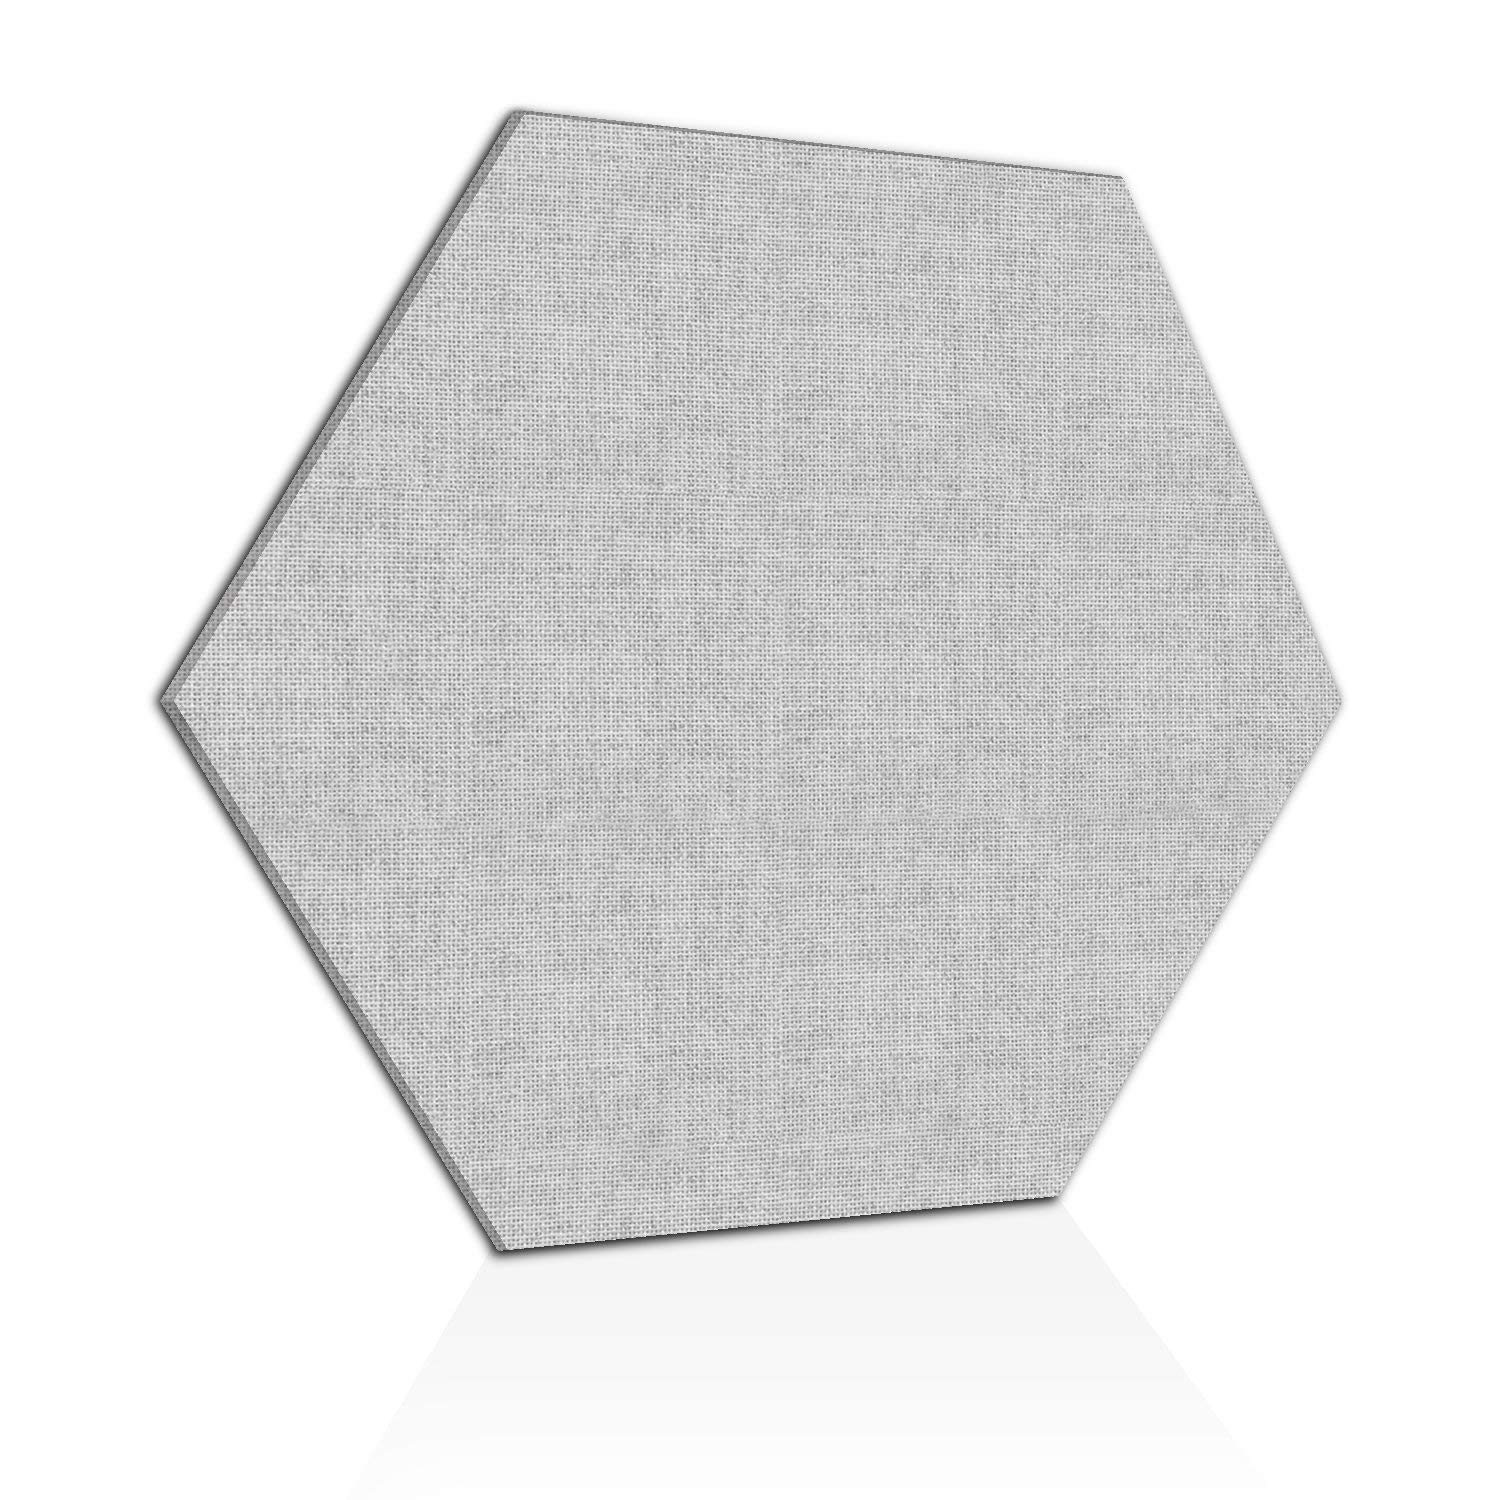 "ADW Acoustic Panel Hexagon - 24"" x 24"" x 1"""